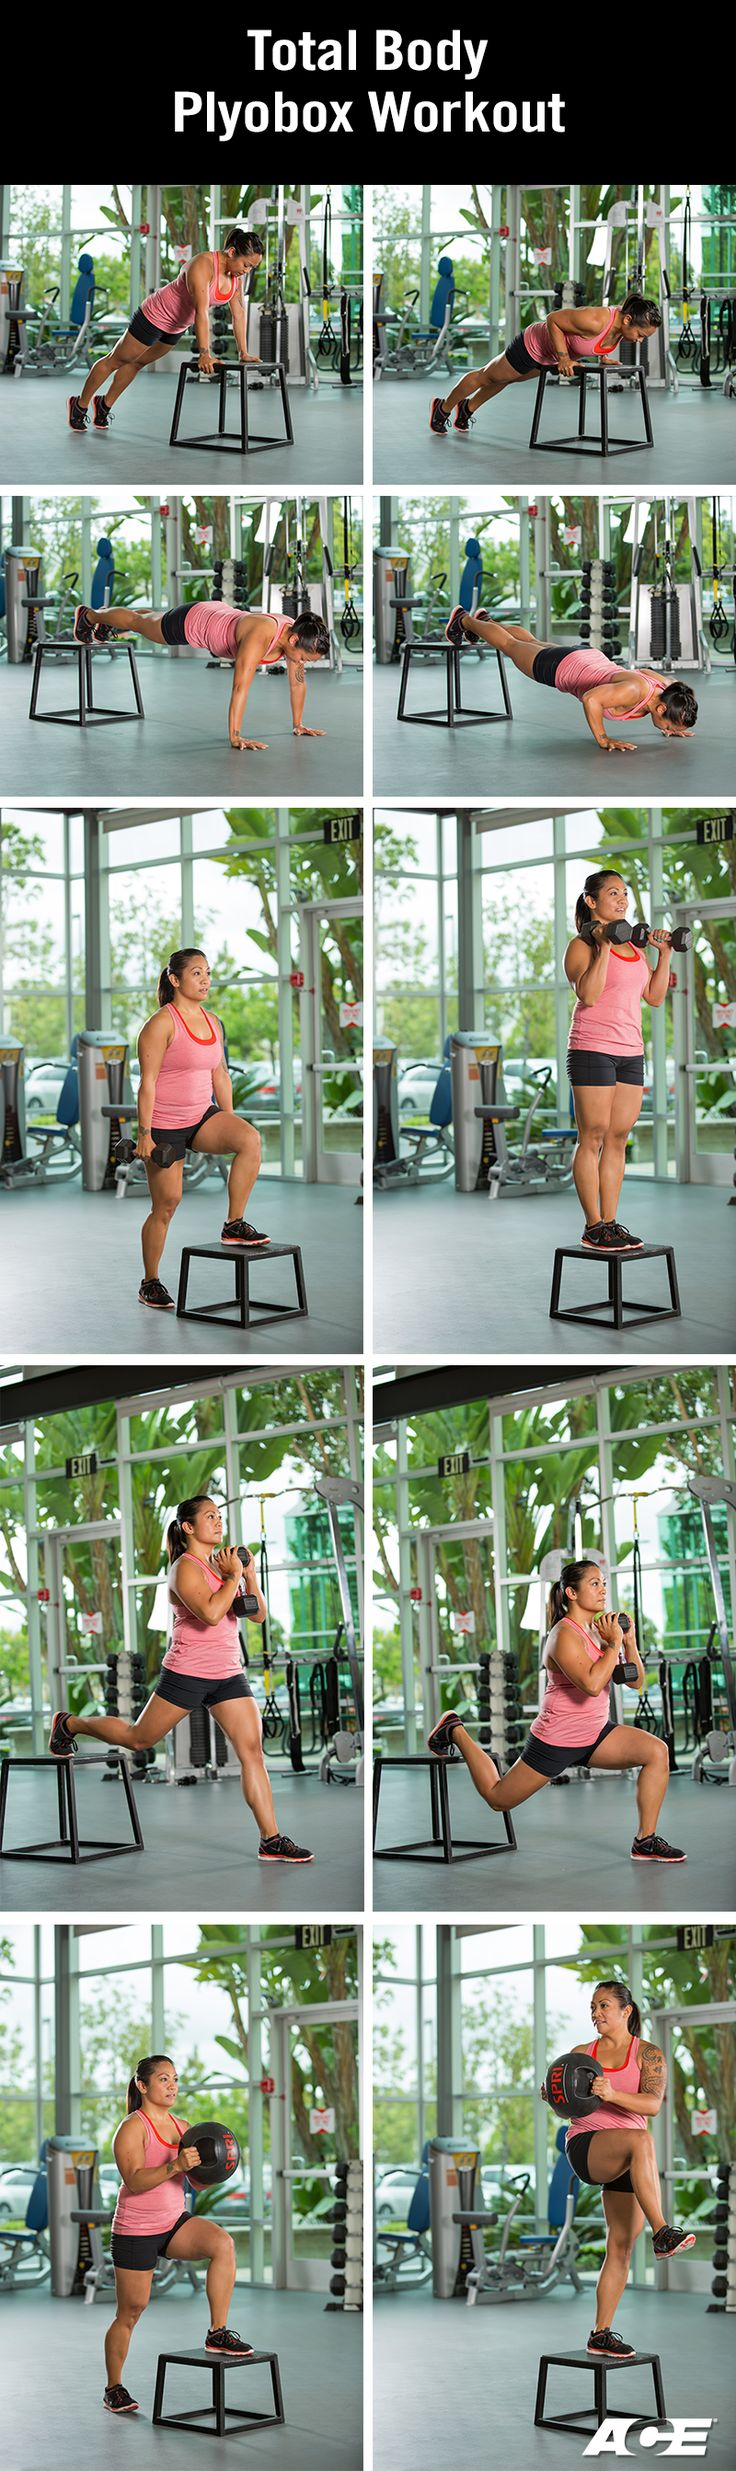 Total Body Circuit Featuring the Plyometric Box